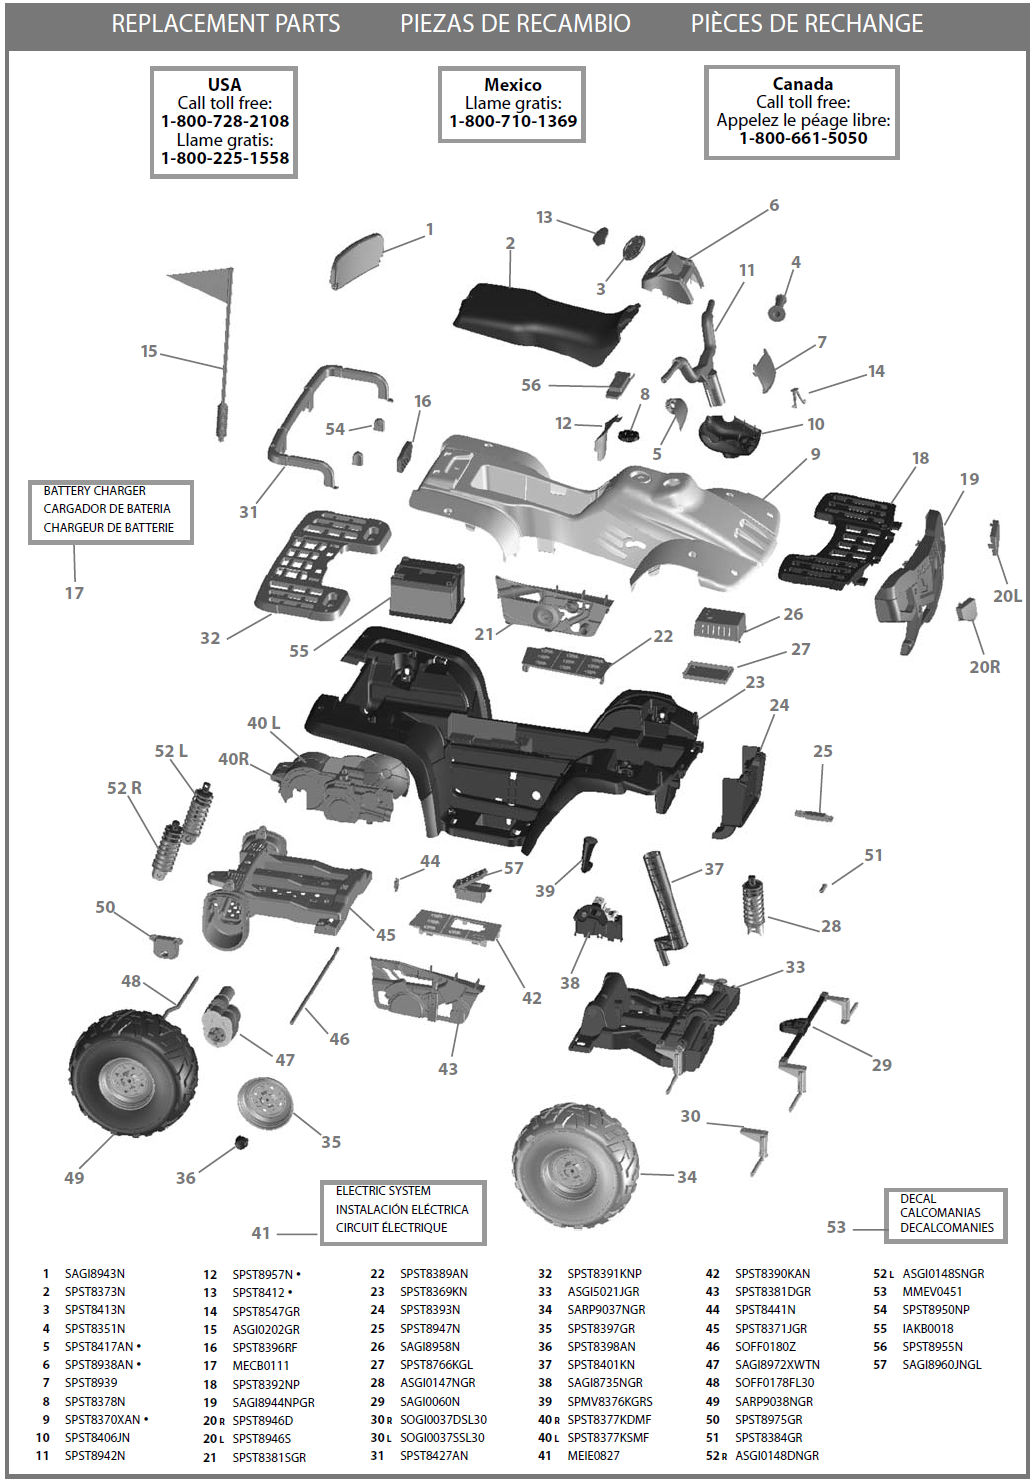 IGOD0510 parts diagram